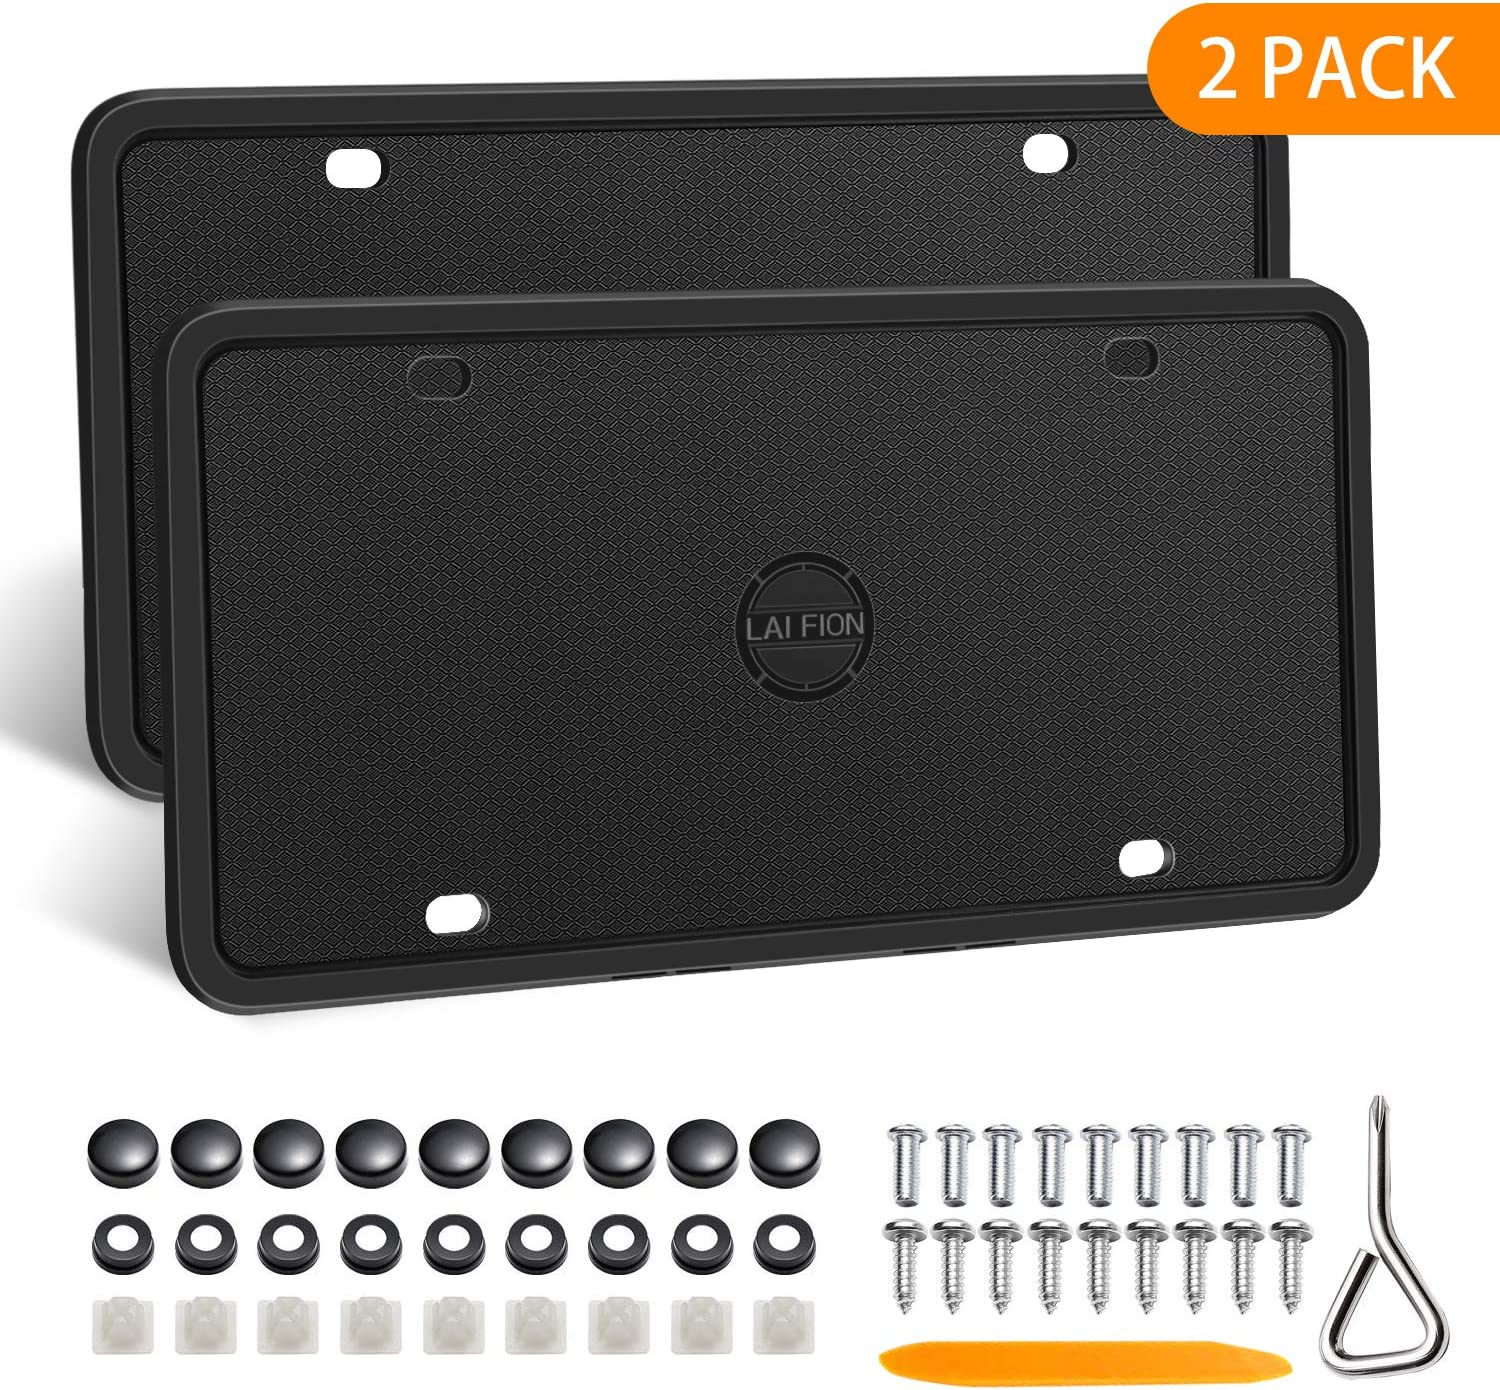 LAI FION Silicone License Plate Frames Stainless Steel Screws 2Pcs 4 Holes Black License Plate Covers Front//Rear Tag Holder Rust-Proof Rattle-Proof Weather-Proof with Black Screw Caps